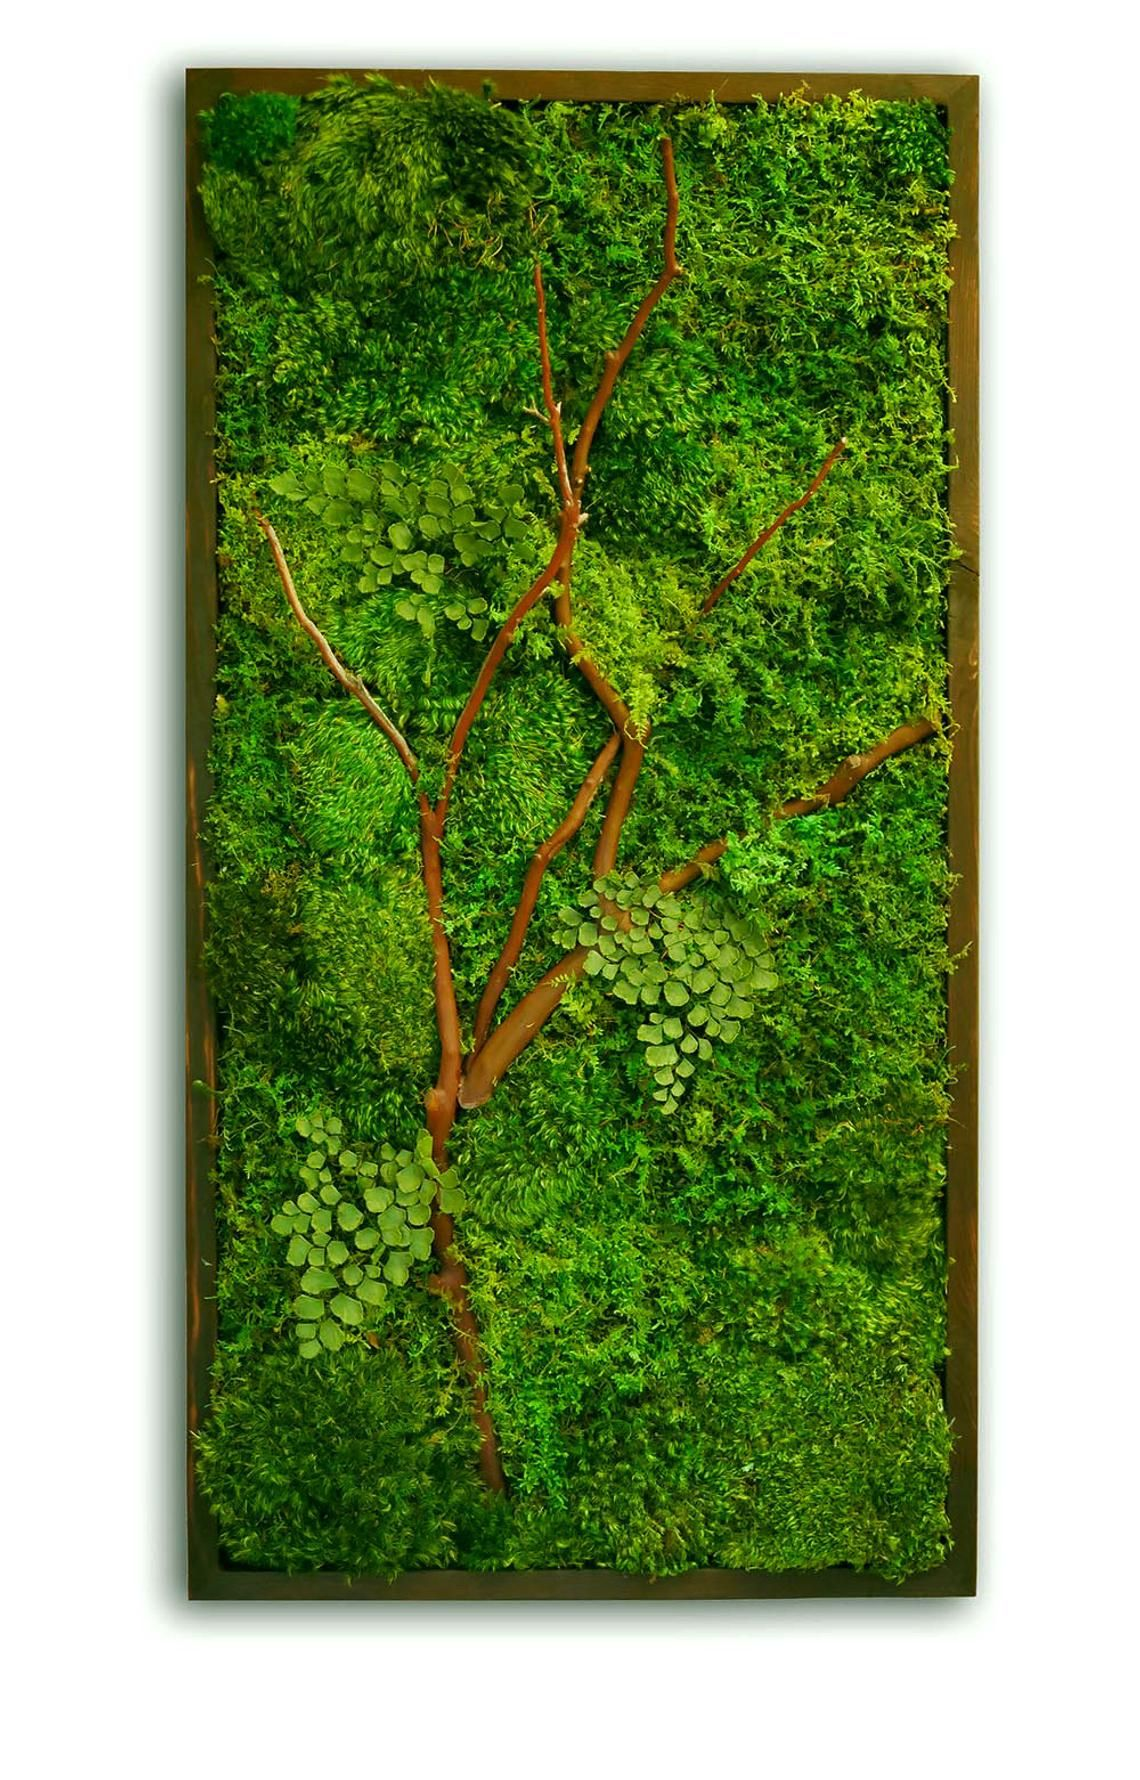 18×36″ Moss Wall Art with Manzanita branches. Real preserved zero-care green wall. Real preserved moss, ferns, and driftwood